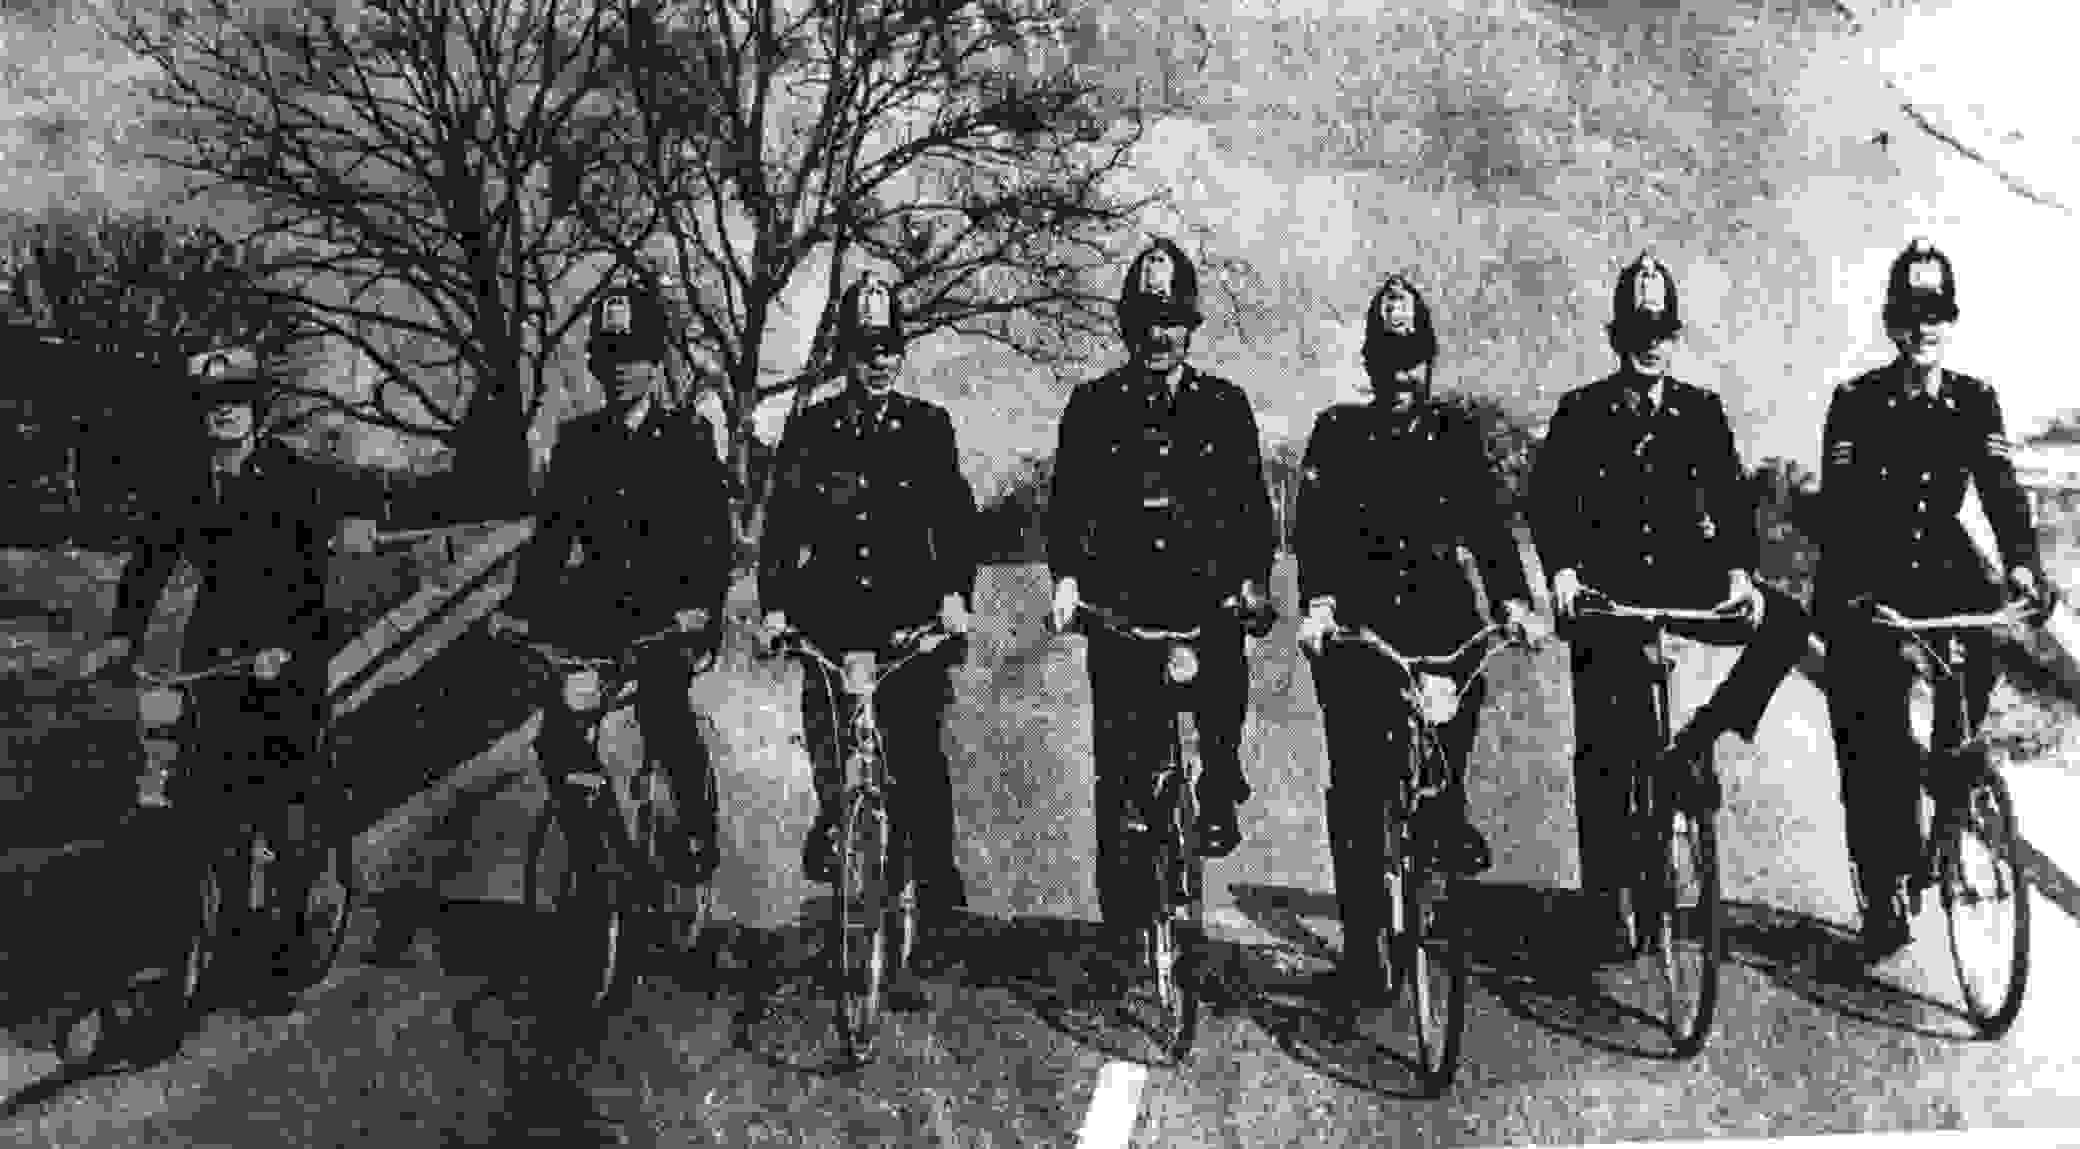 betterbikingcoppers.jpg - 50.04 kB